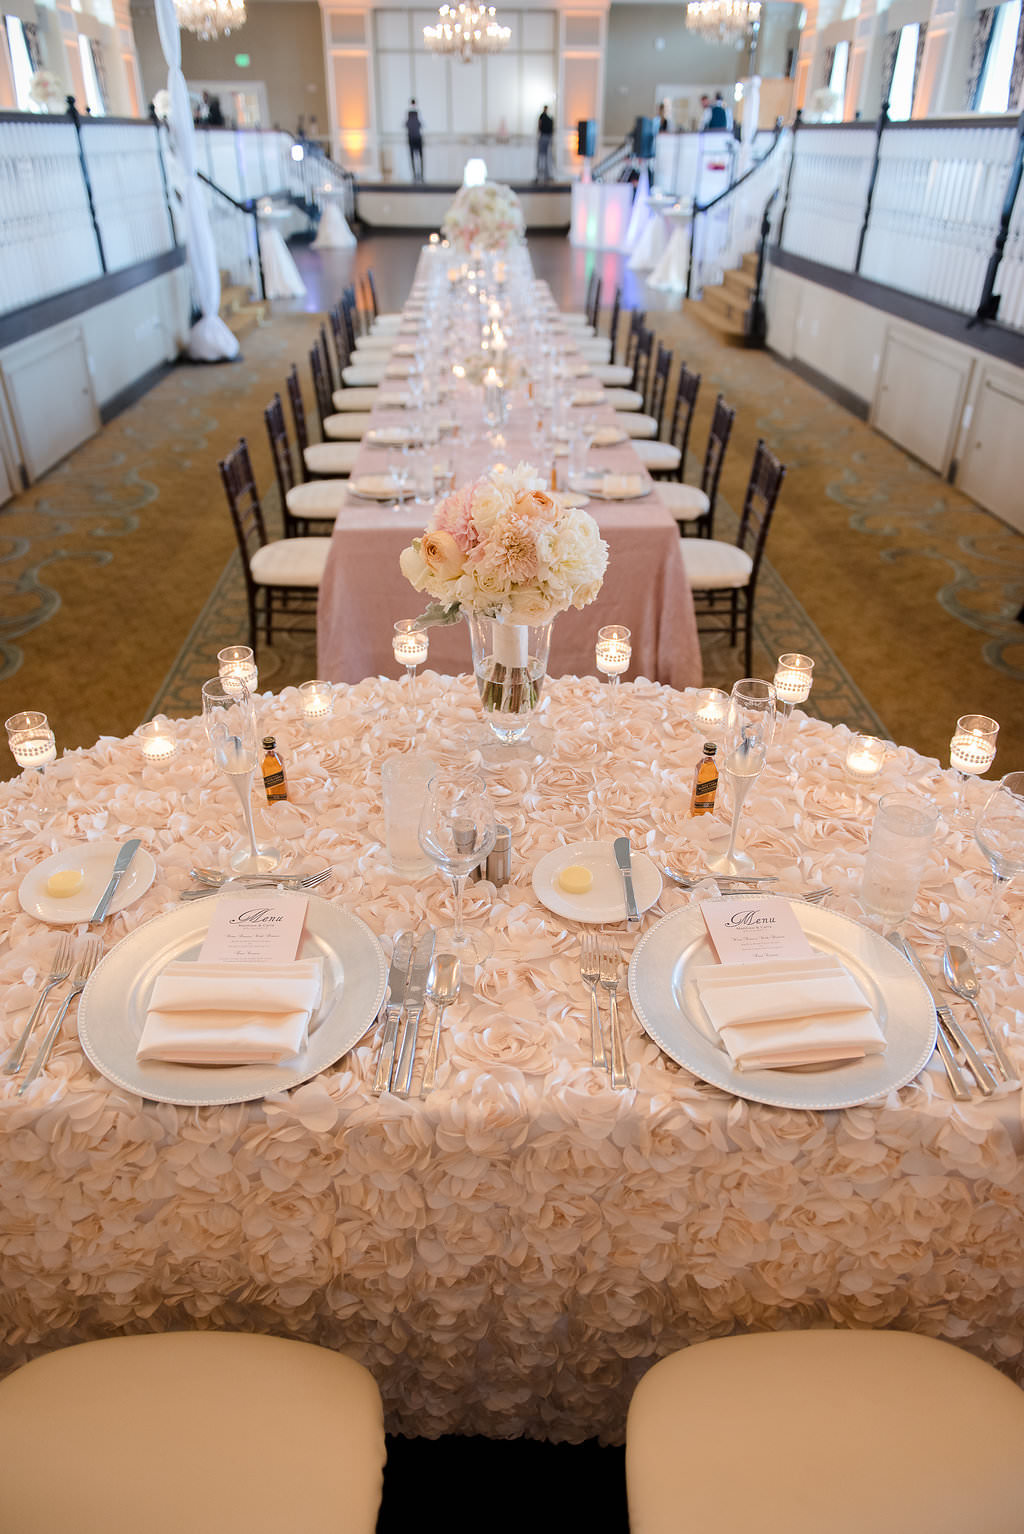 Hotel Ballroom Pink and Champagne Wedding Reception Sweetheart Table with Low Ivory and Pink Rose Centerpiece, Floating Votive Candles in Glass Holders, Black Chiavari Chairs | Textured Linen Rentals from Kate Ryan Linens | Historic Waterfront Hotel Wedding Venue The Don CeSar